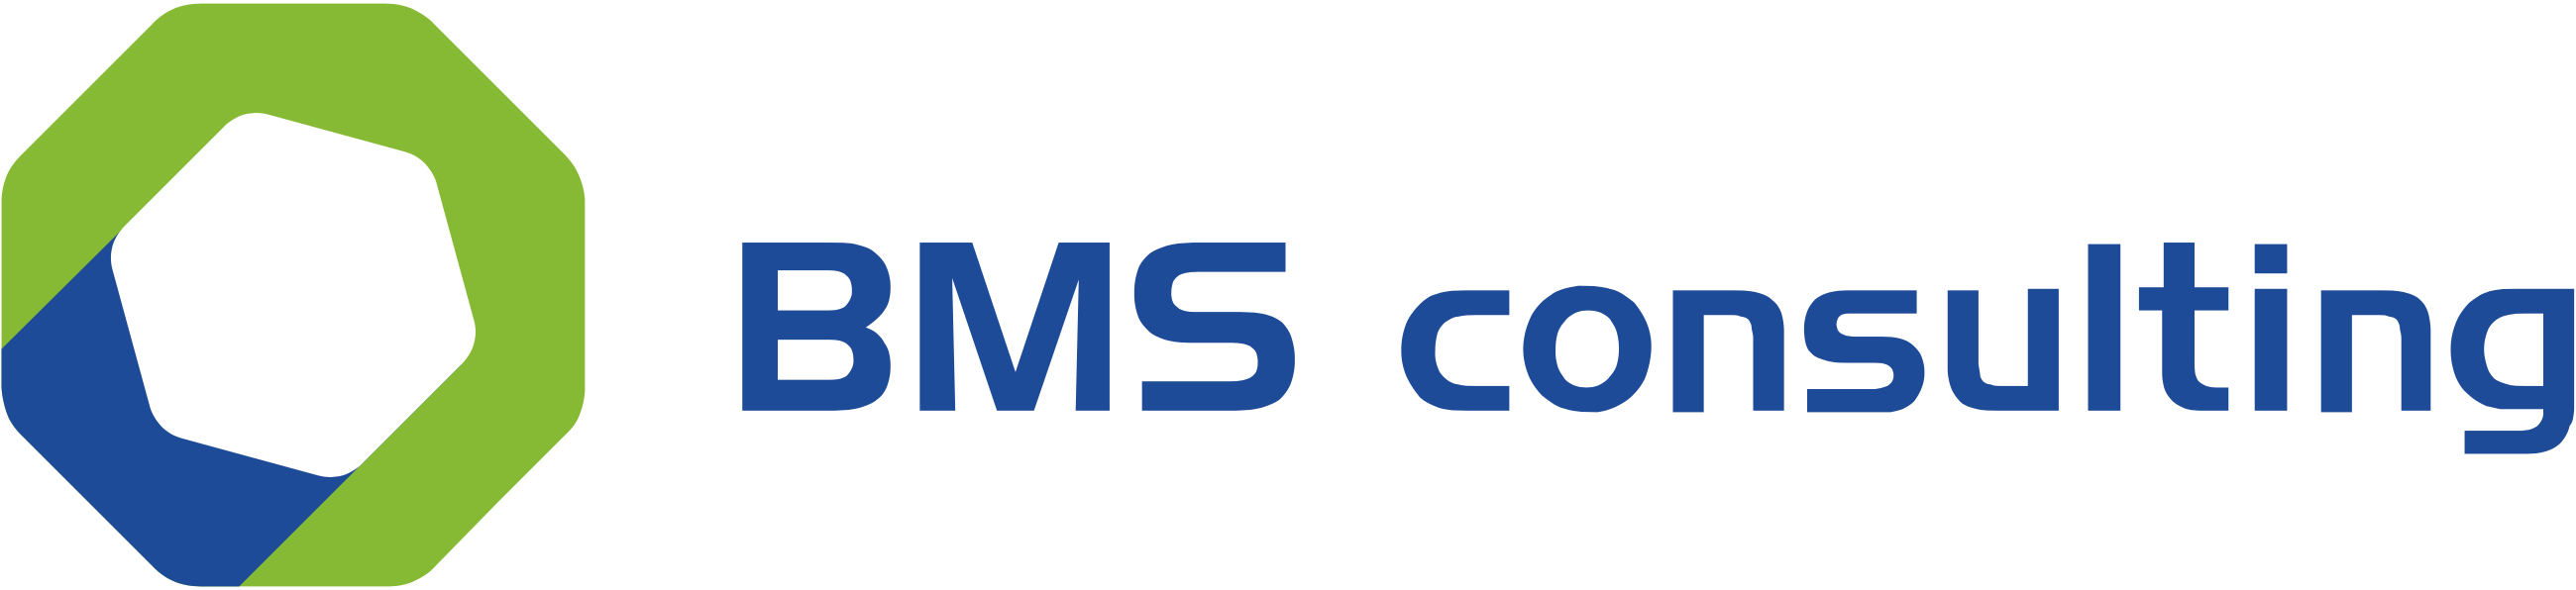 BMS Consulting logo